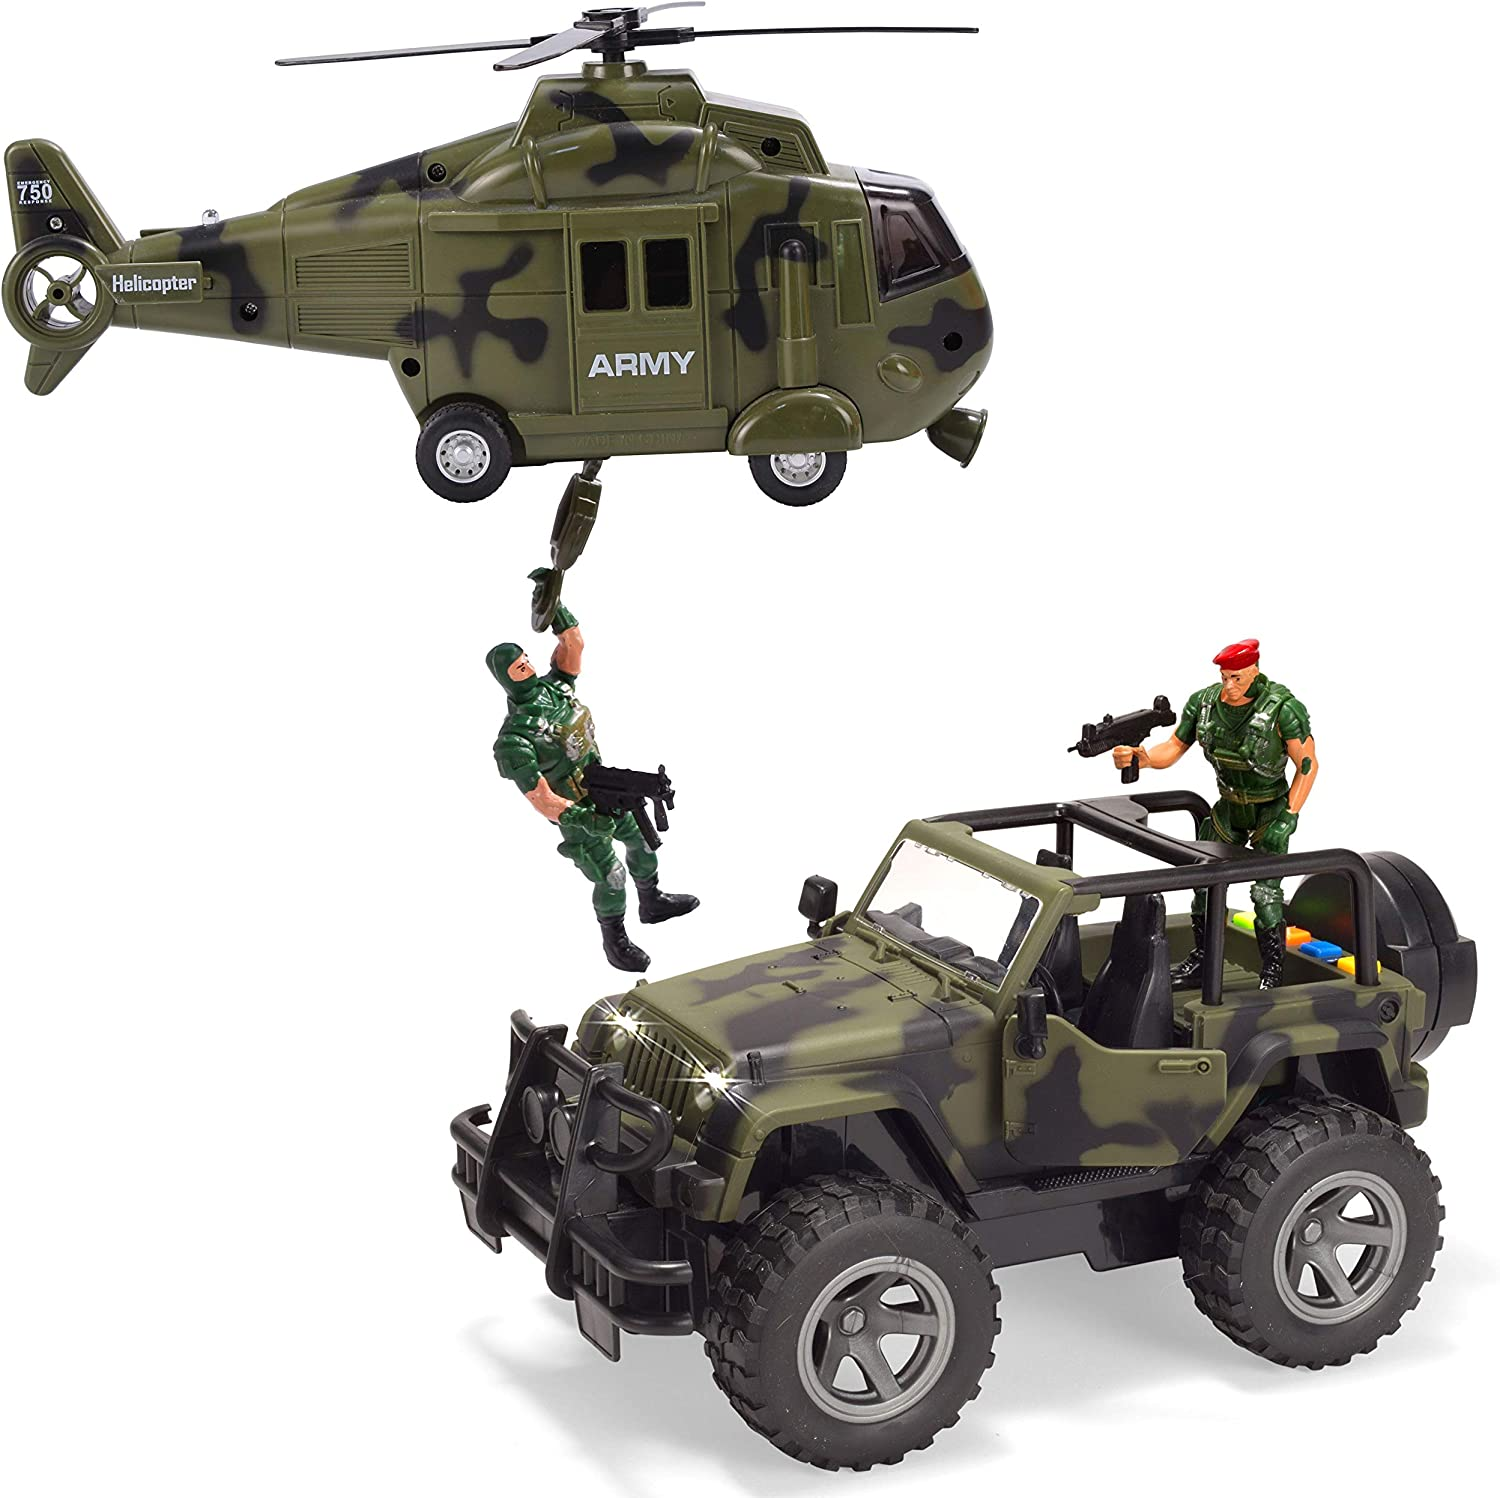 JOYIN 2 Pack Friction Powered Realistic Military Vehicle Car Set Including Military Truck Helicopter Lights and Sounds Sirens Army Men Action Figures and Accessories